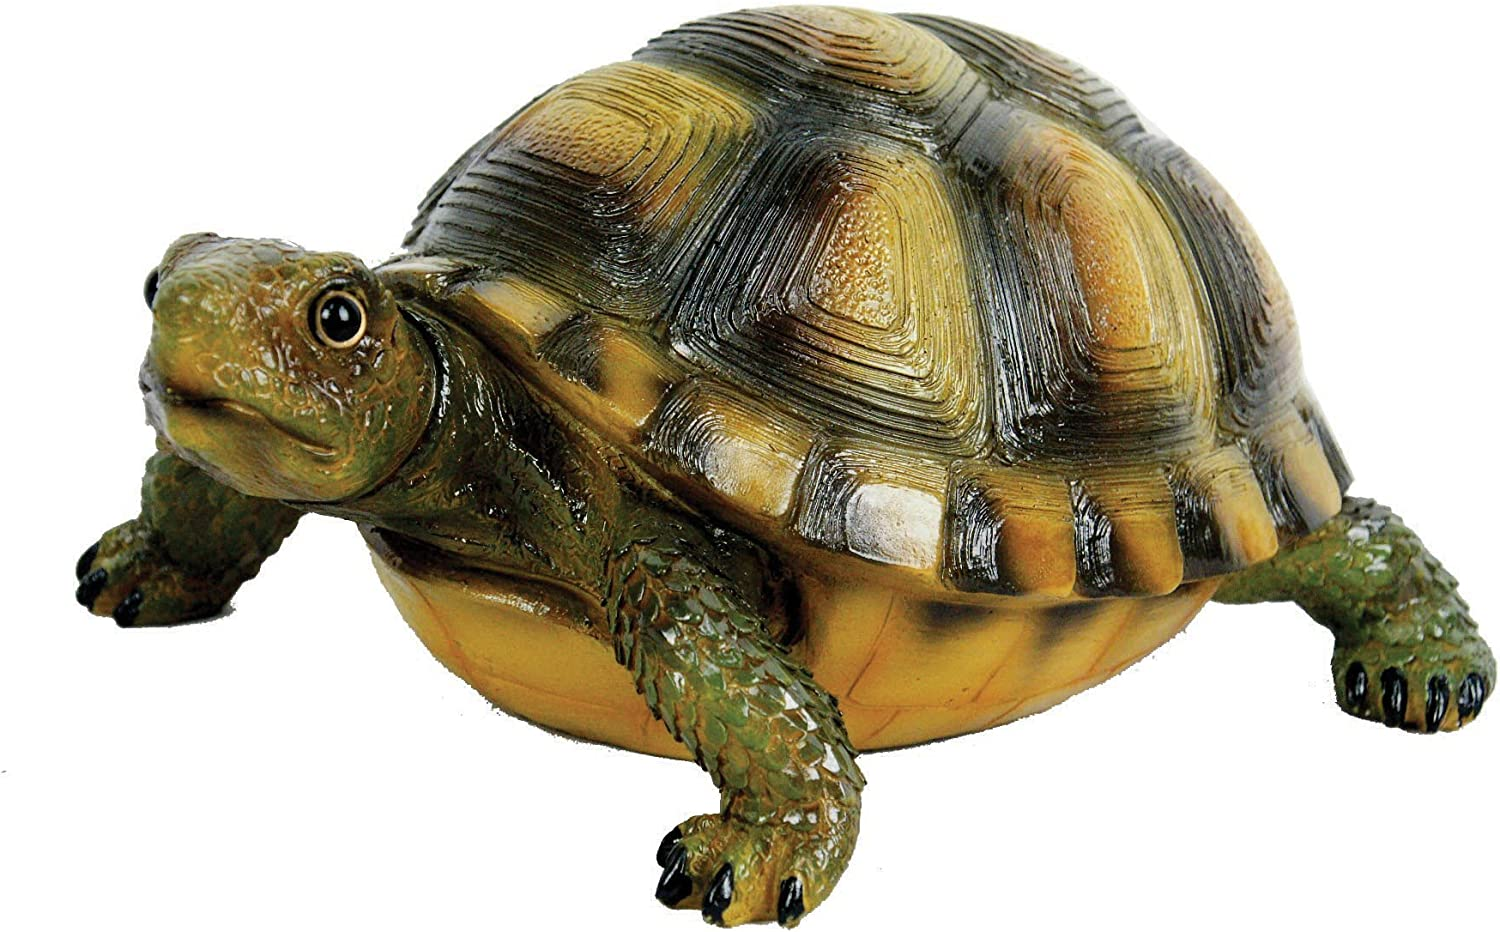 Desert Turtle by Michael Carr Designs - Outdoor Turtle Figurine for gardens, patios and lawns (80061)